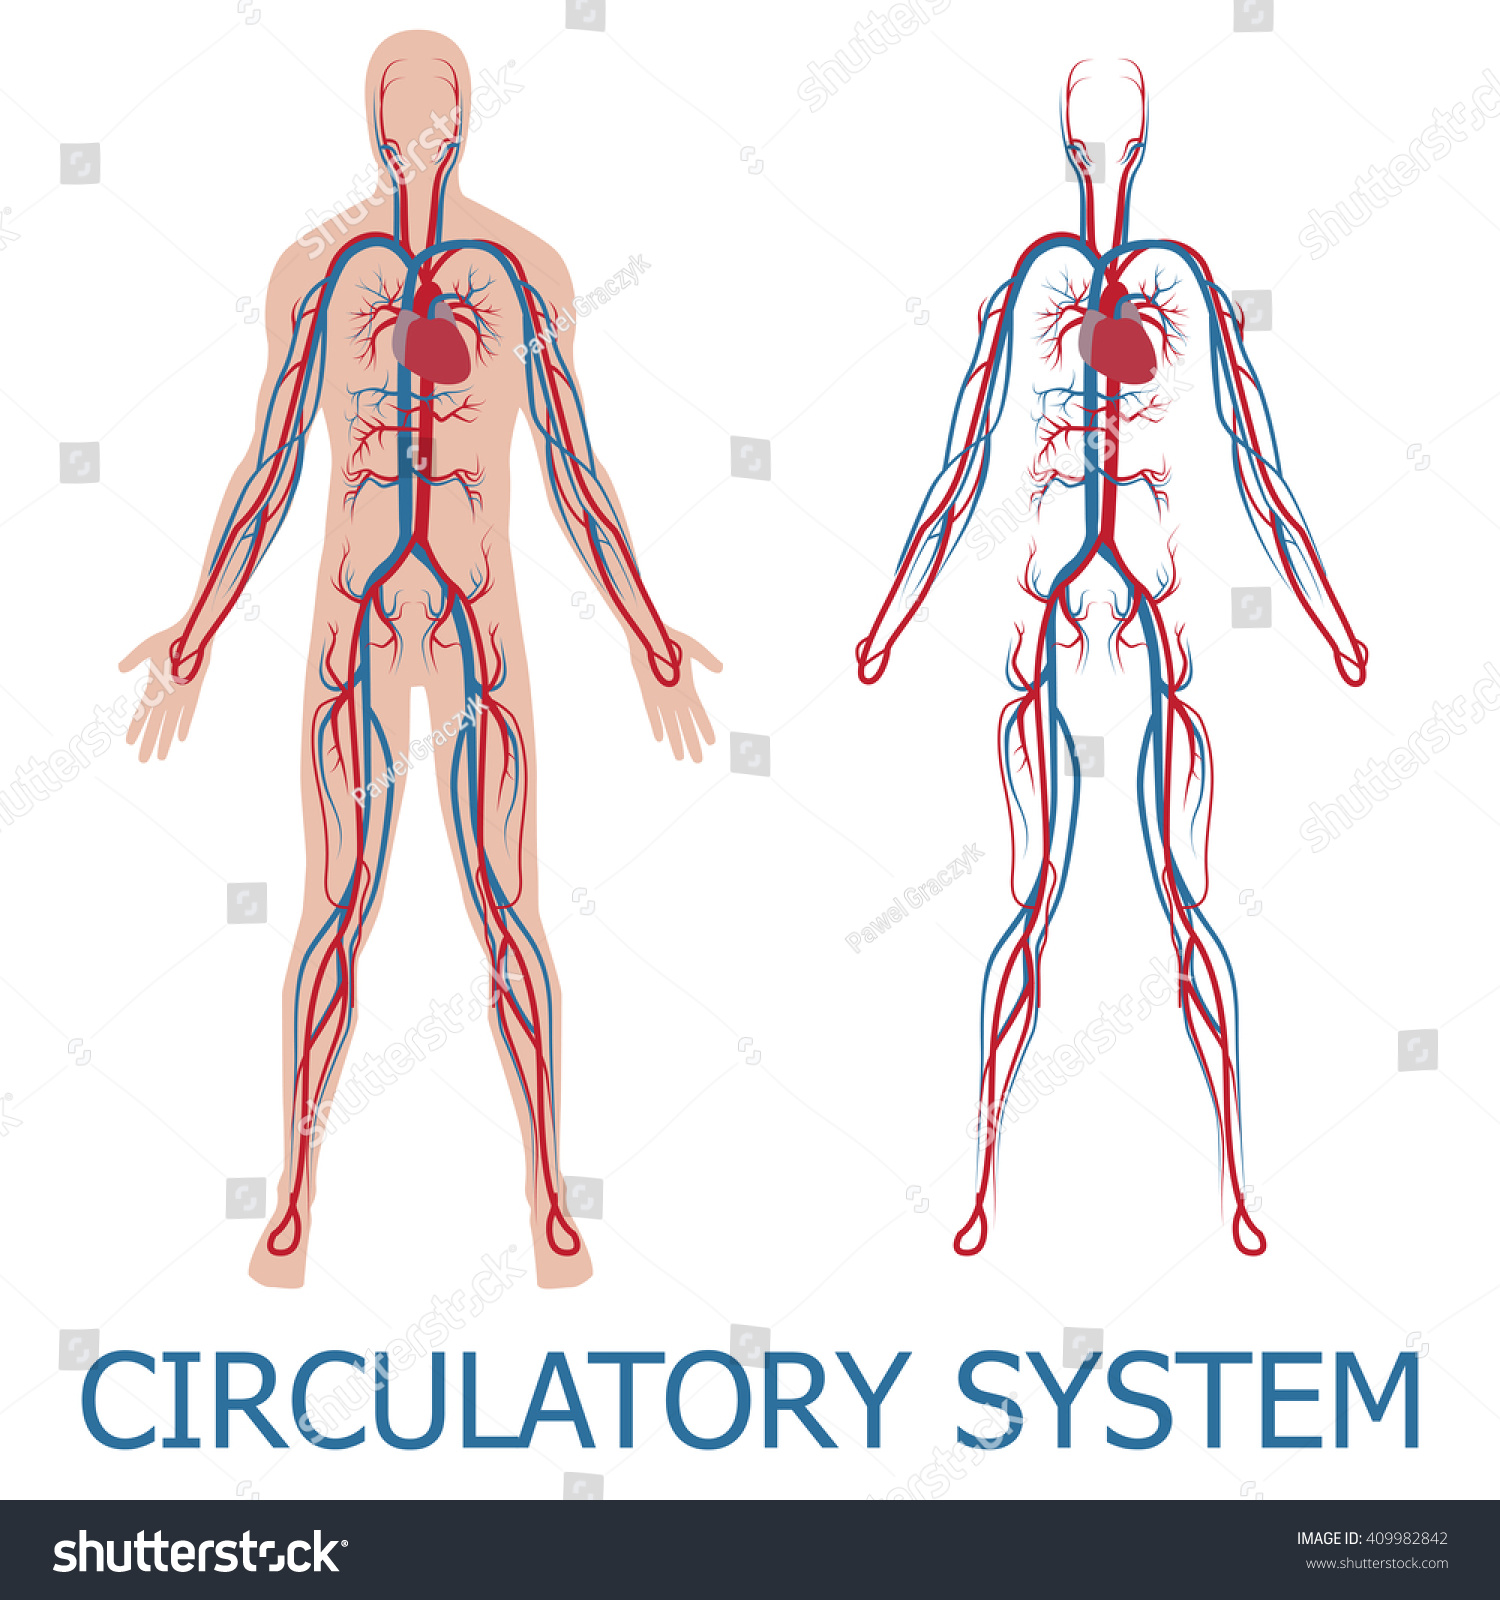 Human Circulatory System Vector Illustration Blood Stock Vector